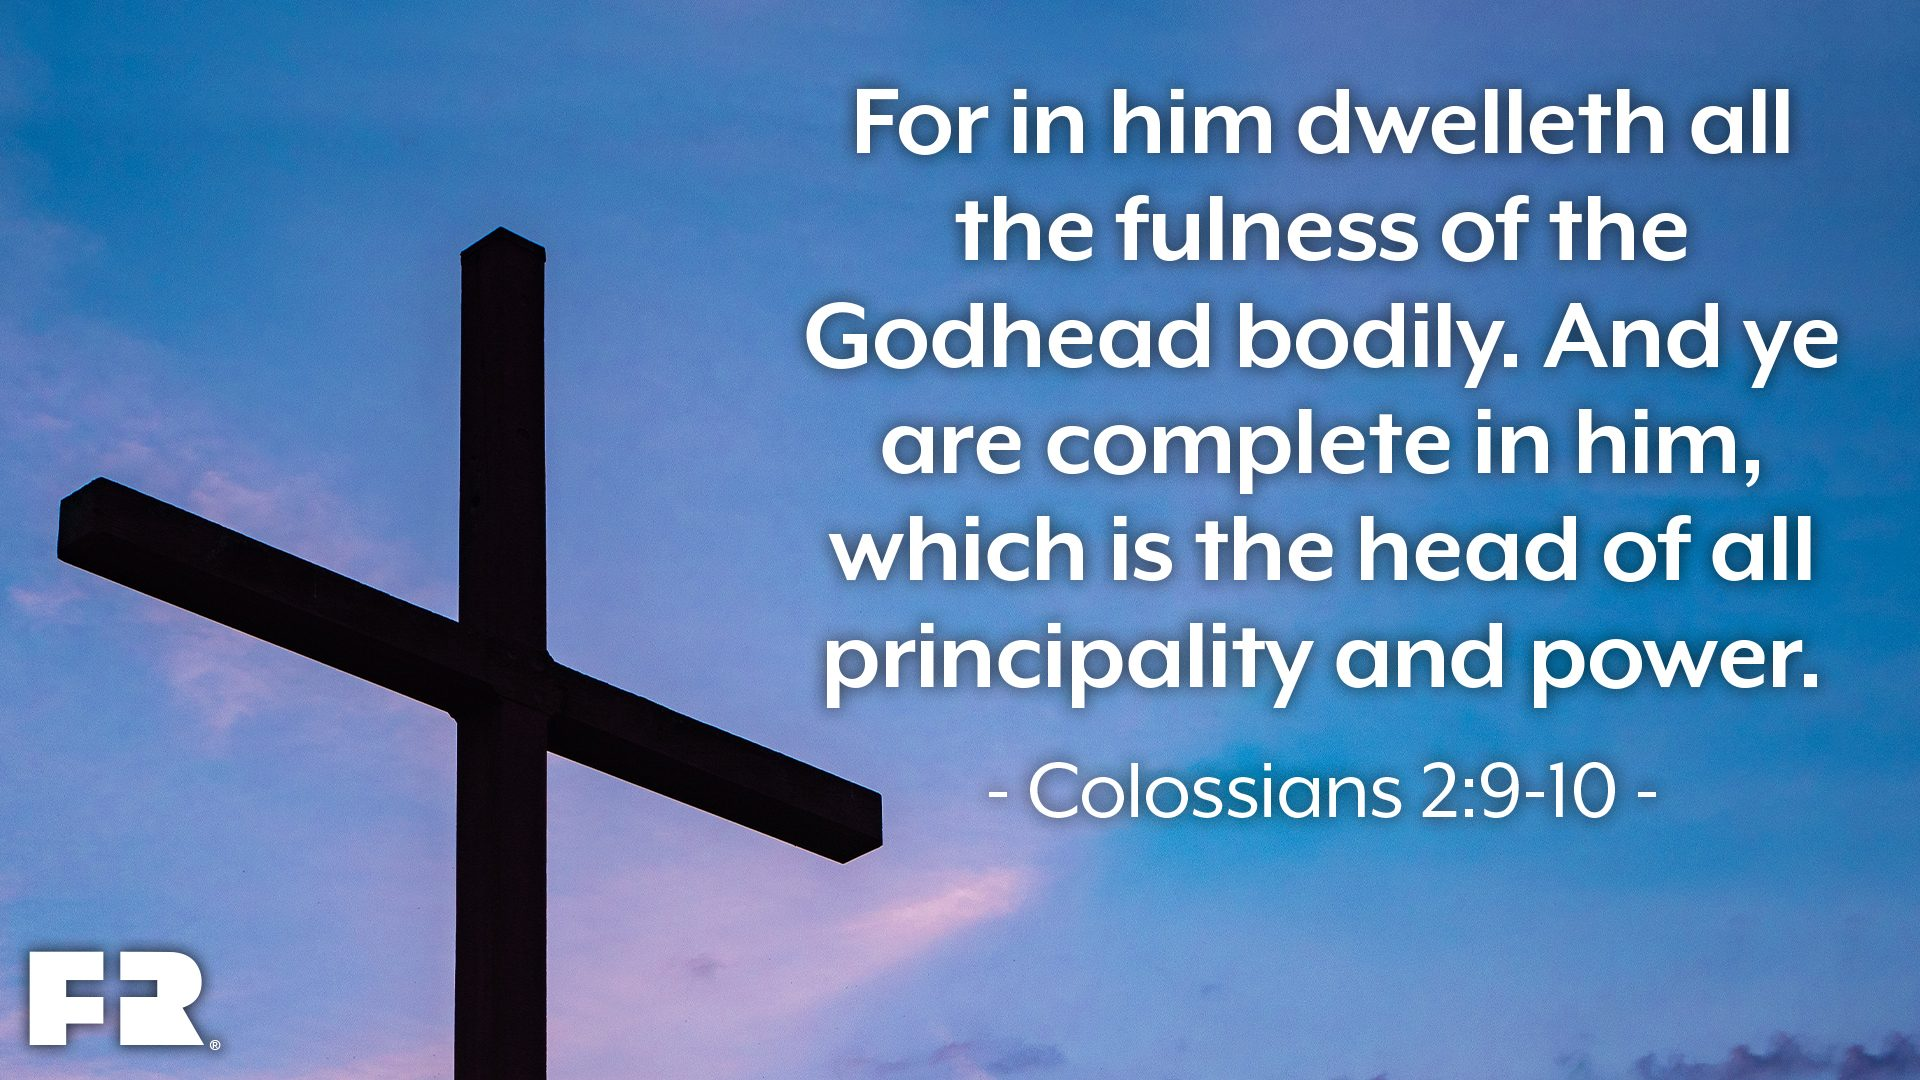 """For in him dwelleth all the fulness of the Godhead bodily. And ye are complete in him, which is the head of all principality and power."""